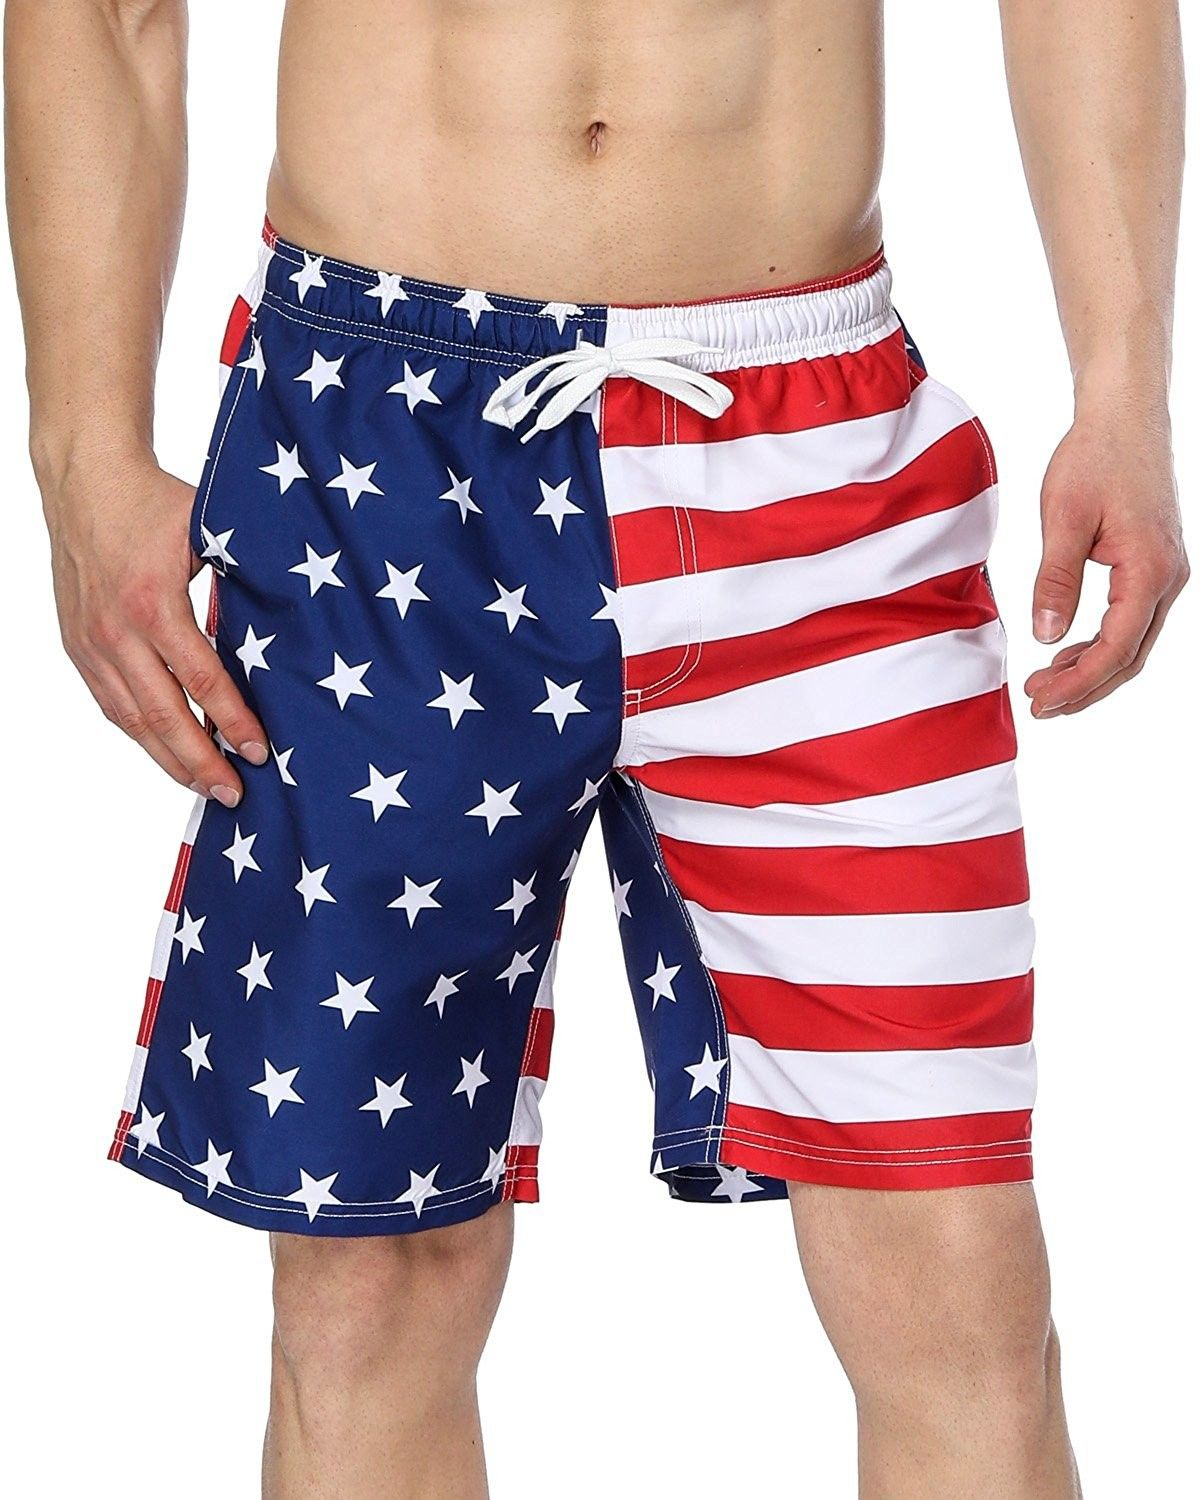 66c932526db7b Men's Clothing, Swim, Board Shorts, Men's American Flag Swim Trunks US Flag  Bathing Suit Board Swim Shorts - American Flag 3 - CY18C9C7ICS #fashion # Swim ...